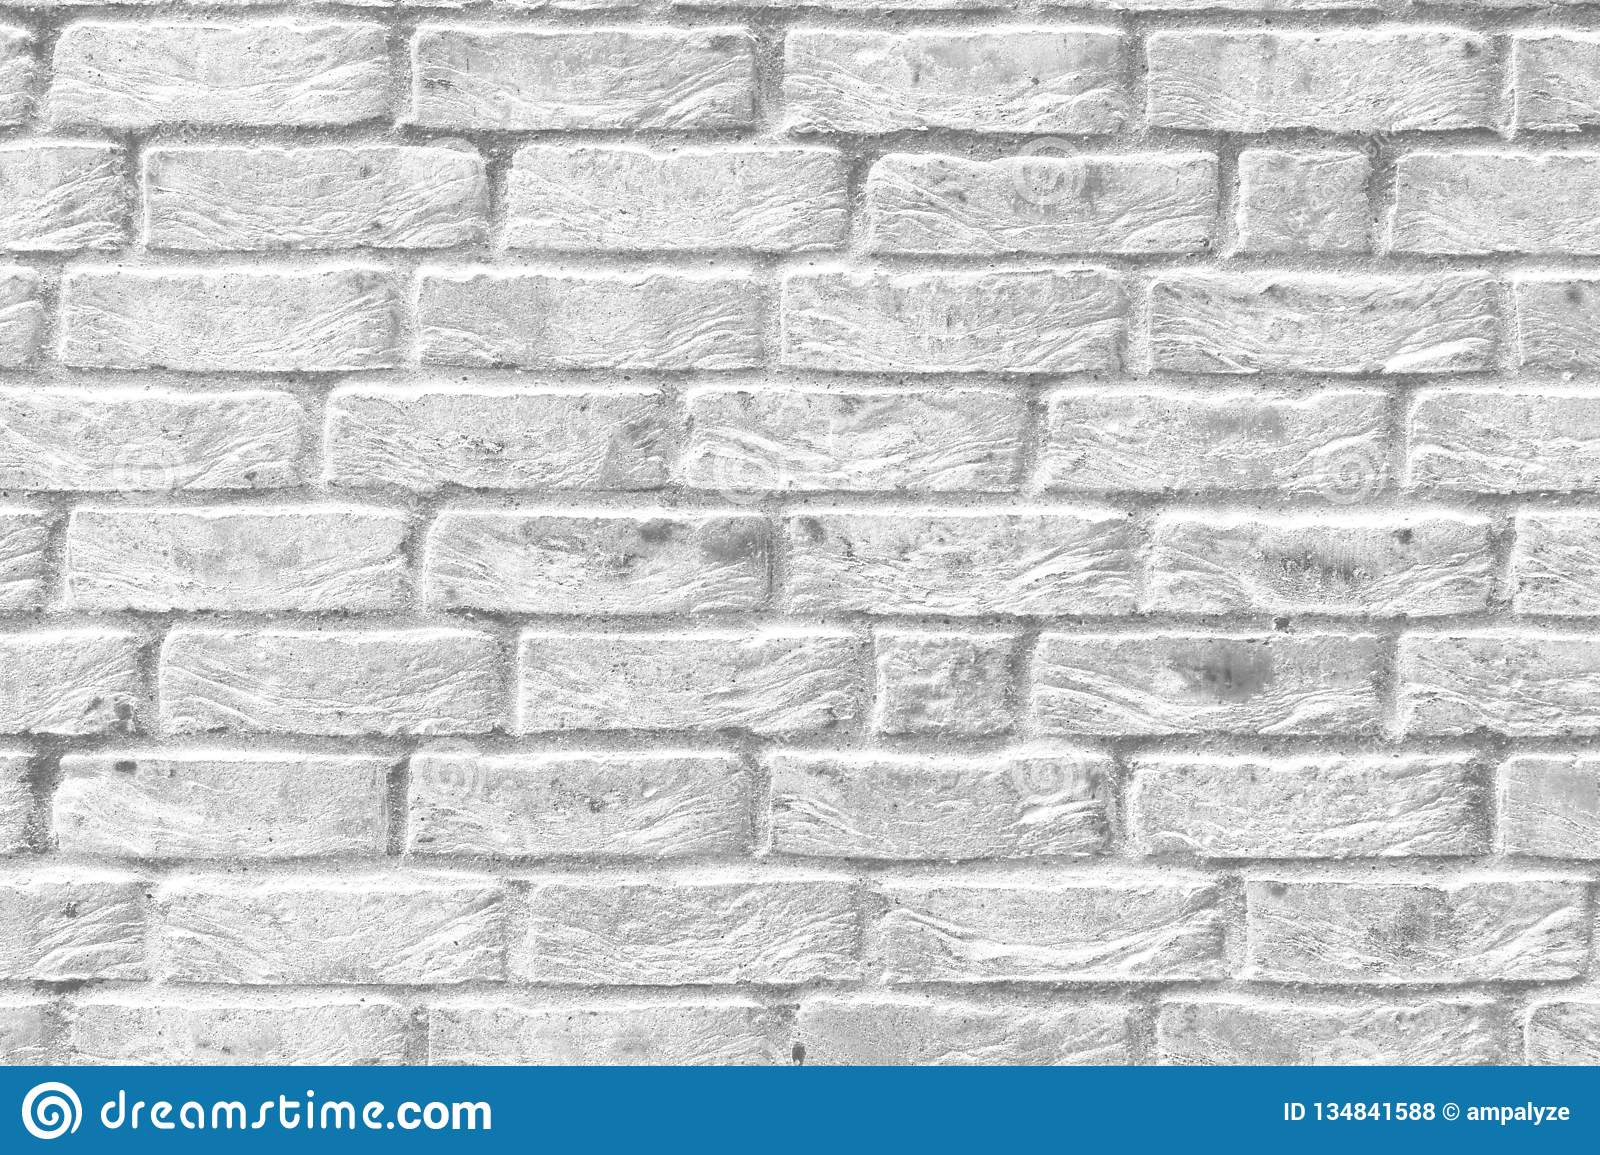 White Bricks Stone Mortar Stucco Wall Background Backdrop Surface